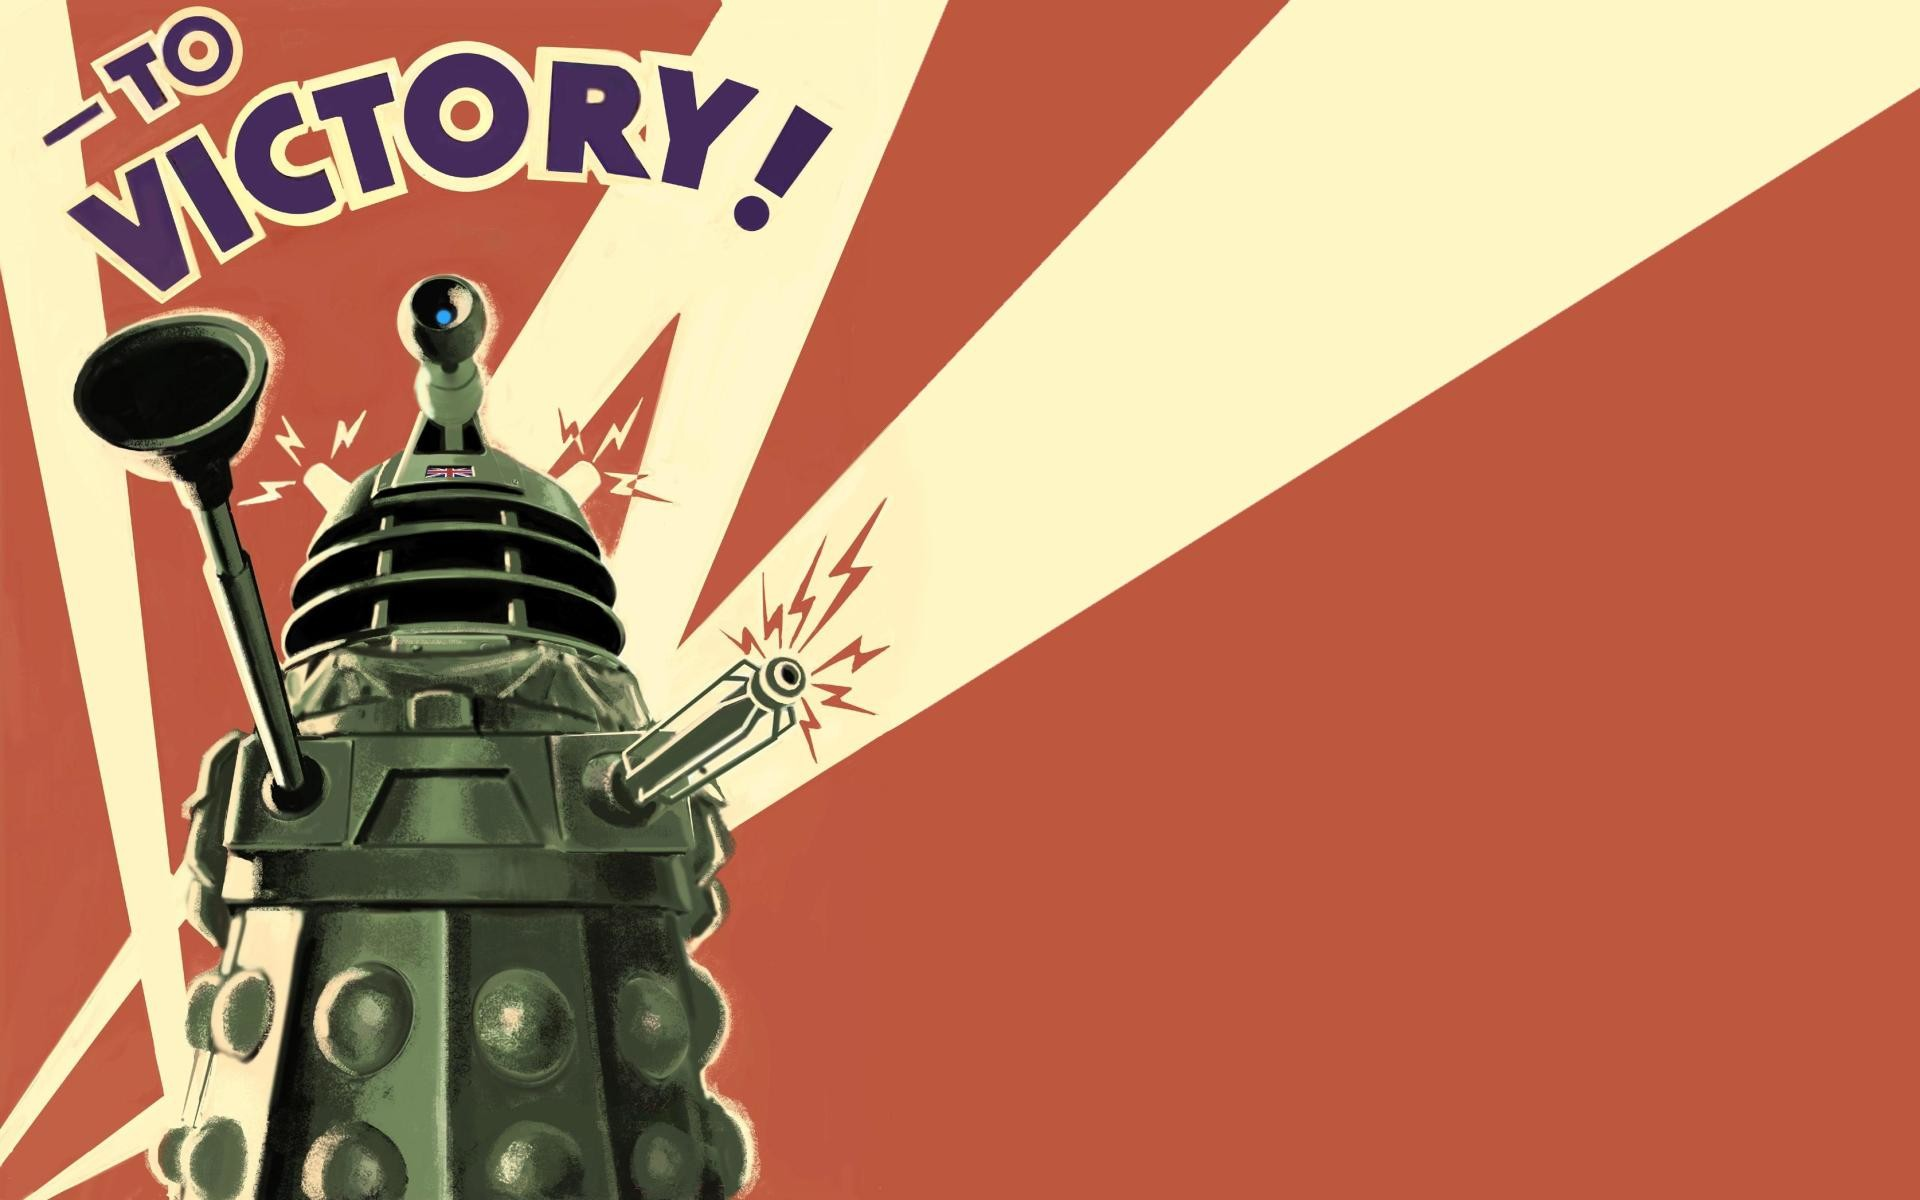 1920x1200 dalek wallpaper – 1920×1200 High Definition Wallpaper, Background .